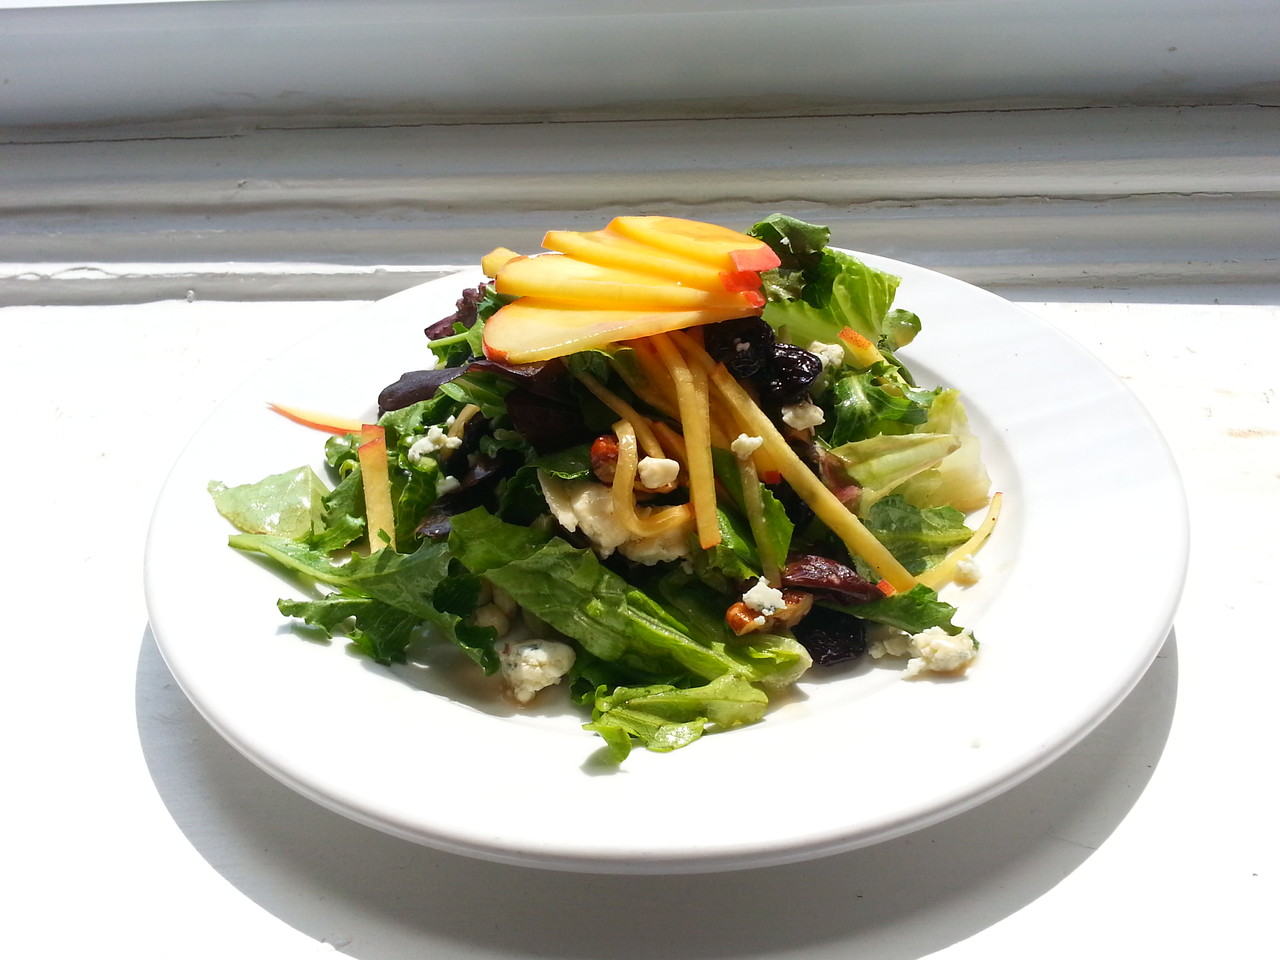 Salad of Baby Greens and Local Organic Peaches